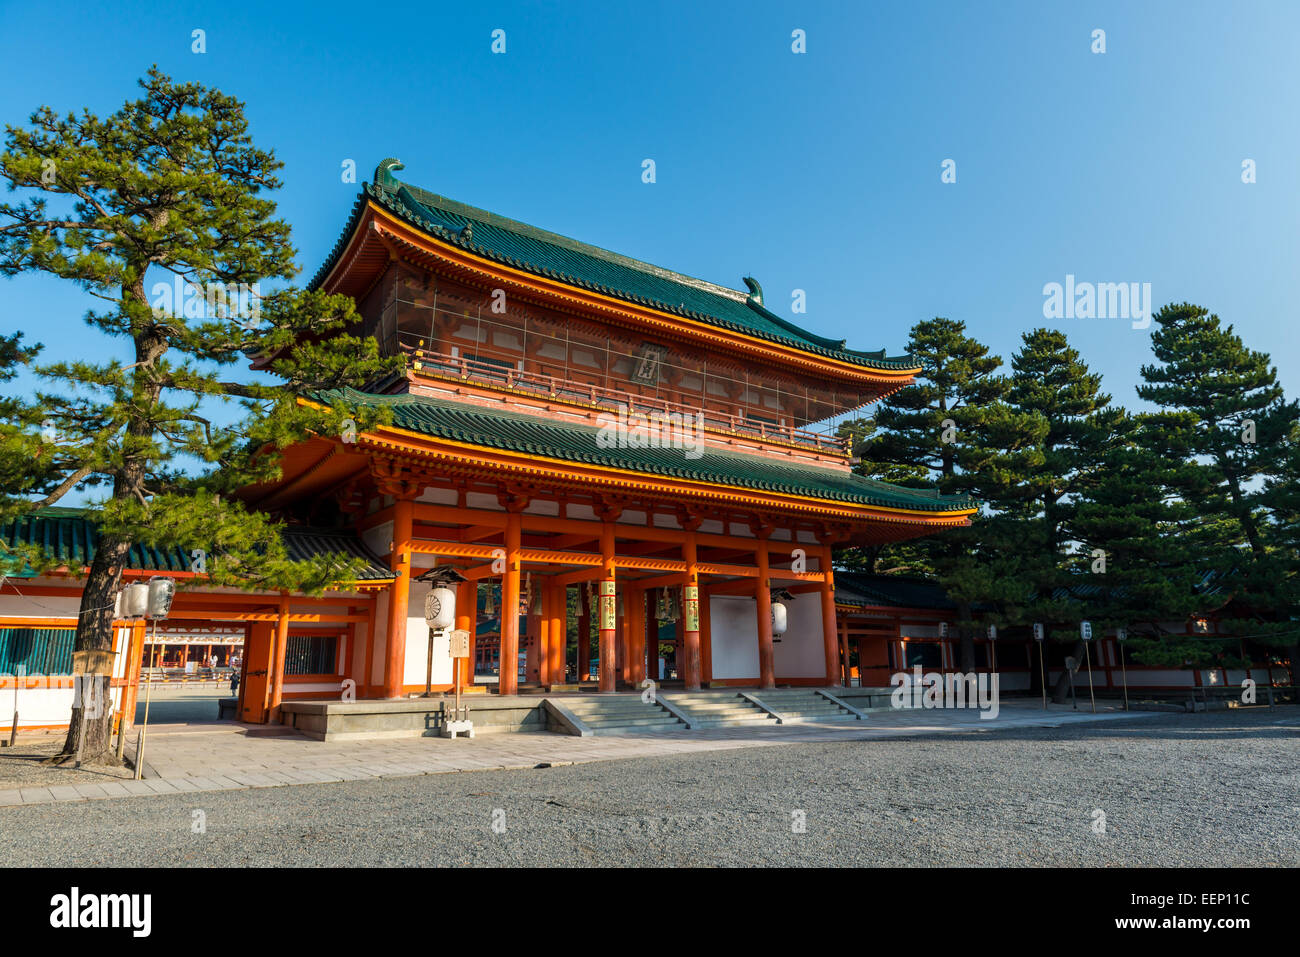 The main gate of Heian Shrine in Kyoto, Japan. - Stock Image